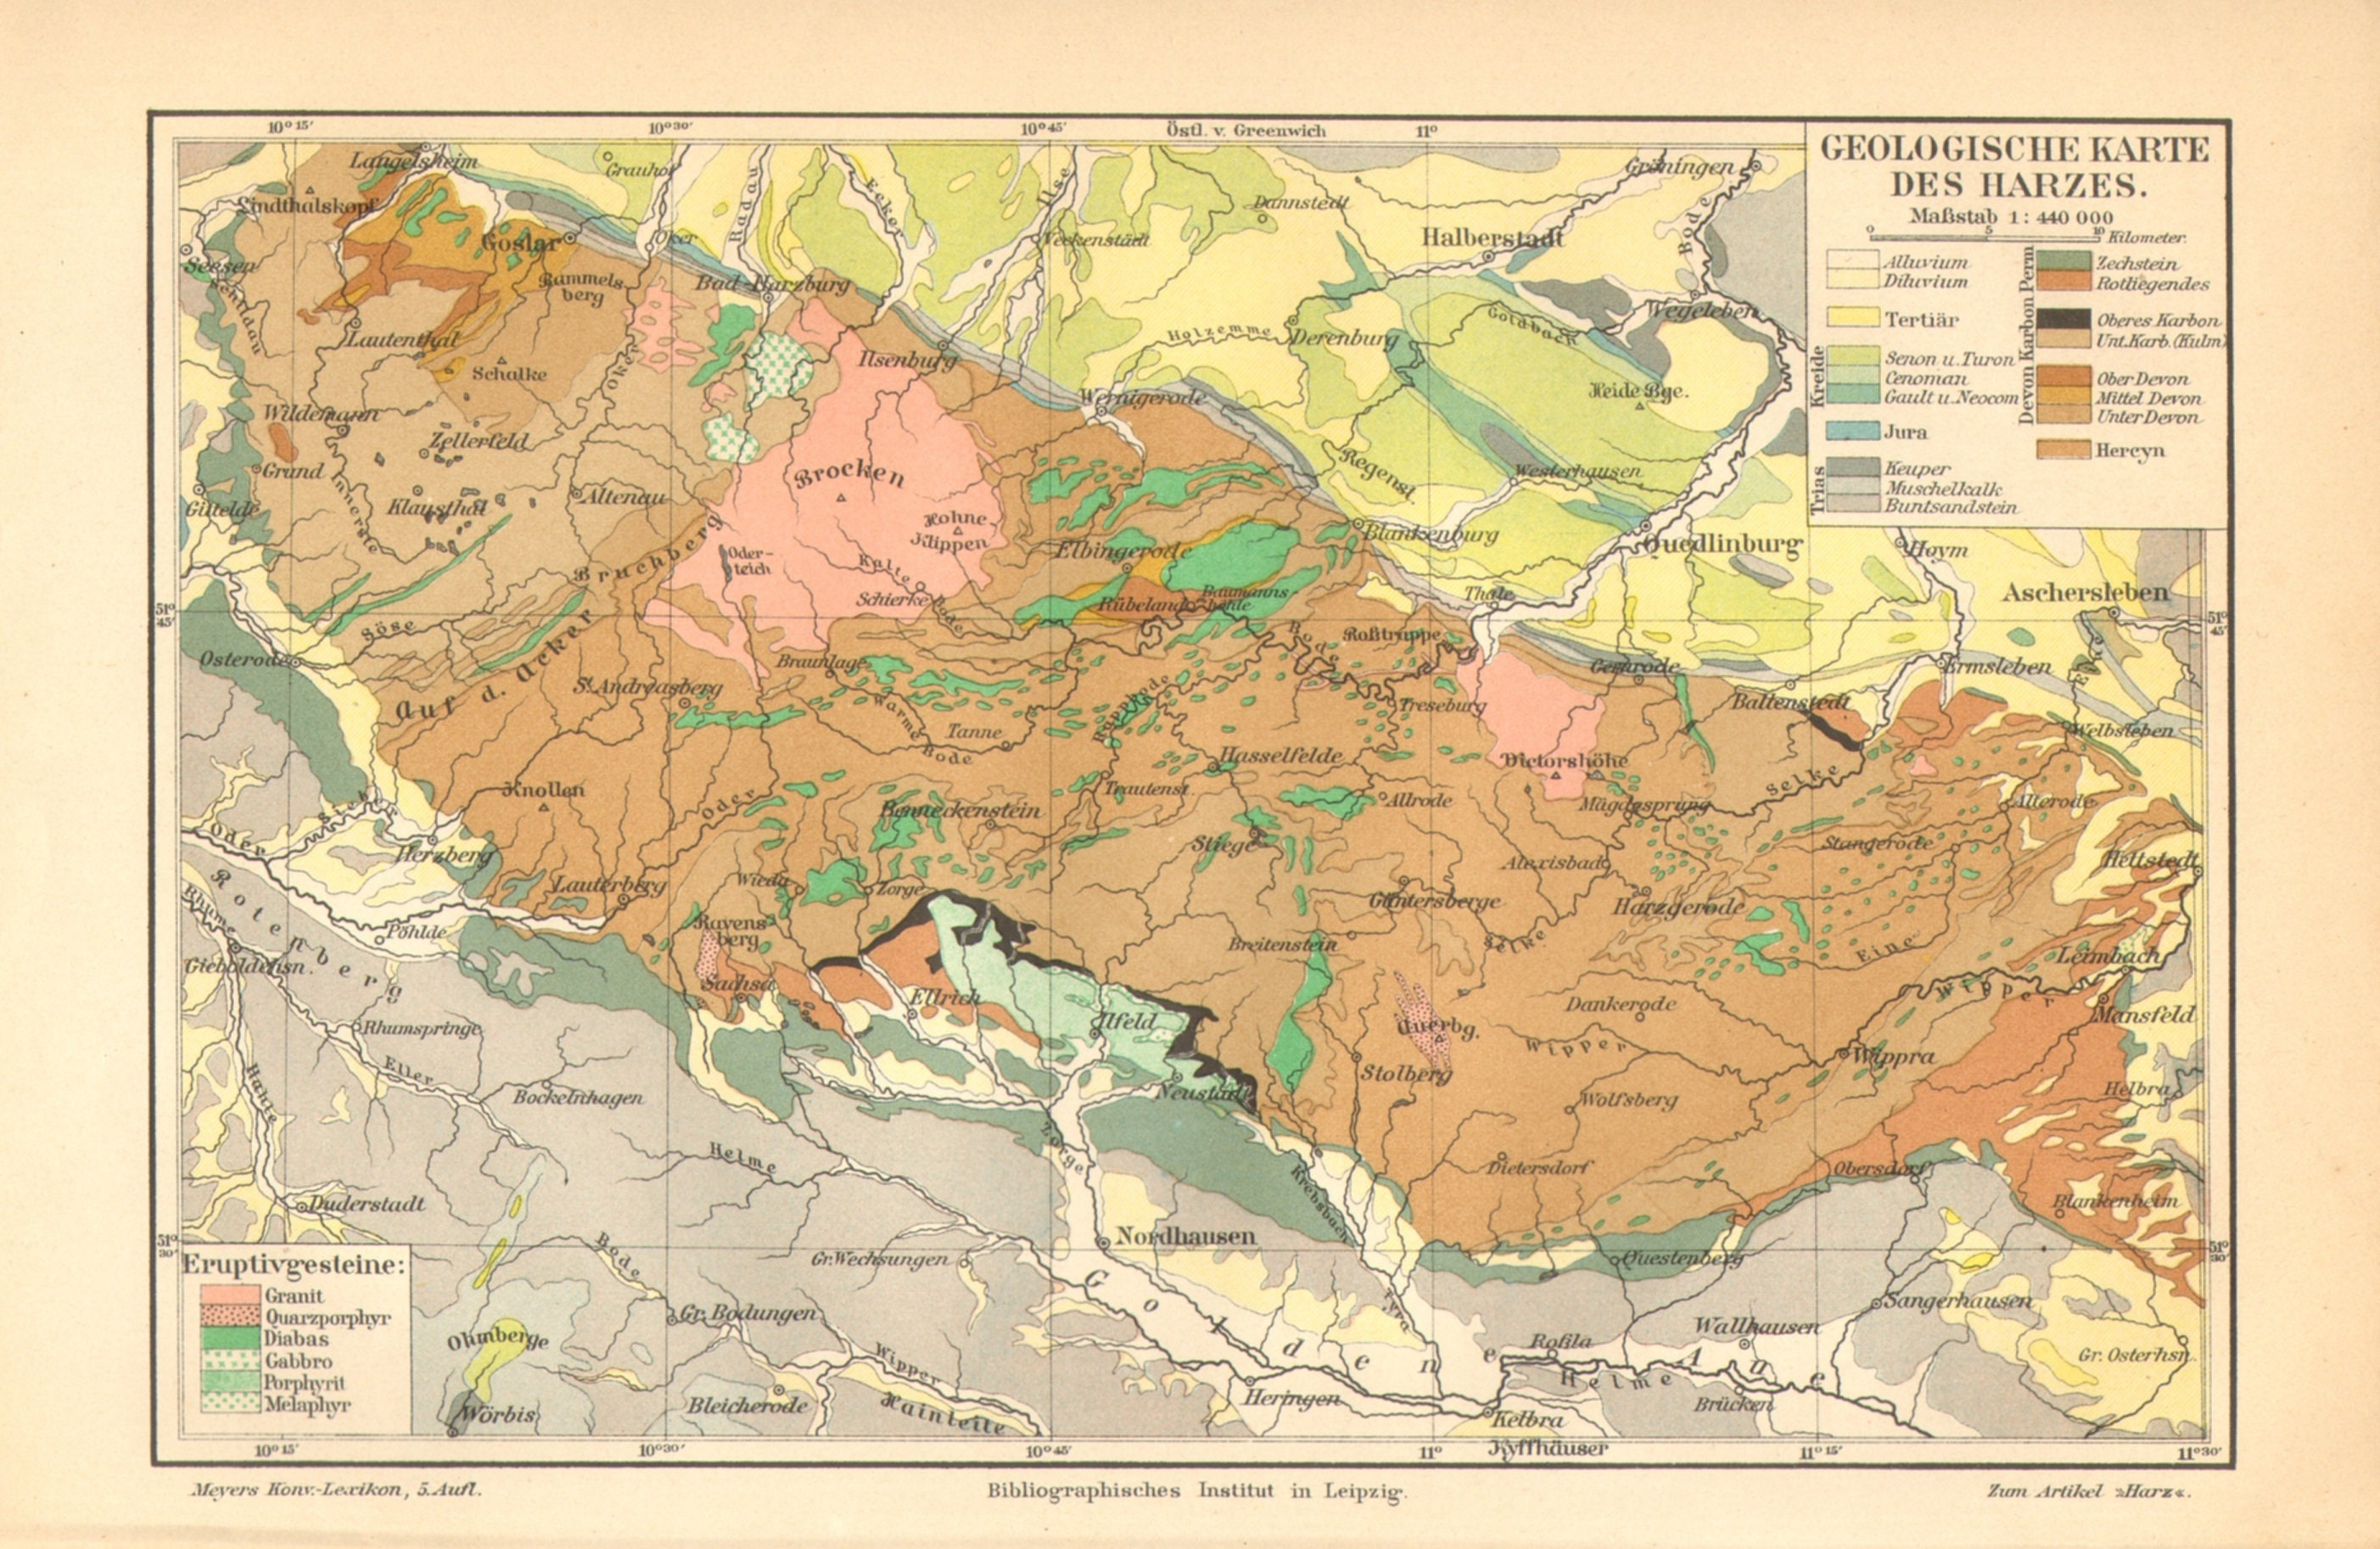 Map Of Germany Mountains.Harz Mountains Germany Antique Geological Map Printed In 1895